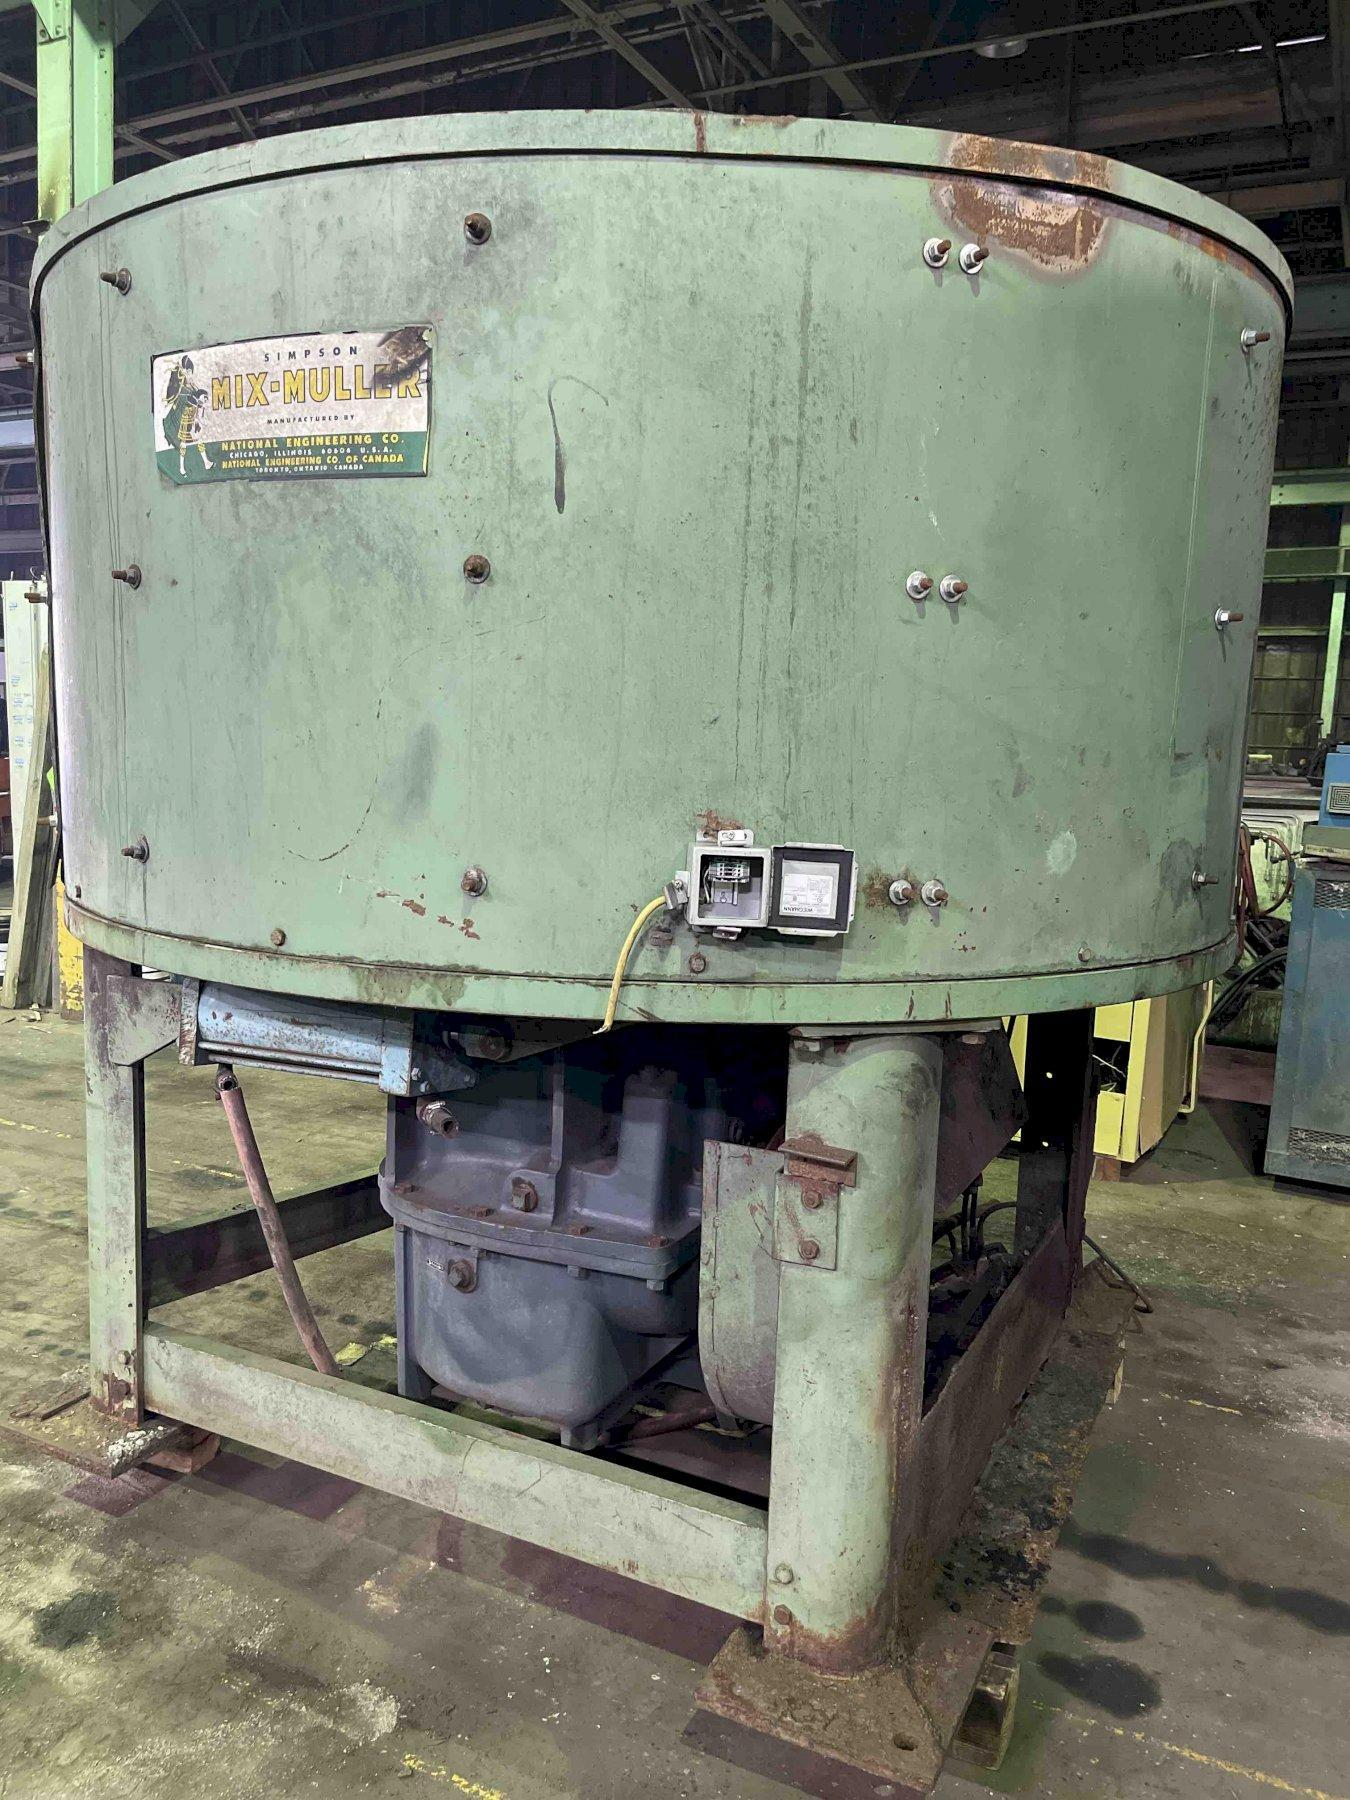 SIMPSON MODEL 2.5G SAND MULLER WITH MOTOR, GEARBOX 9SM2.5F s/n 04-063795, ratio 35.57